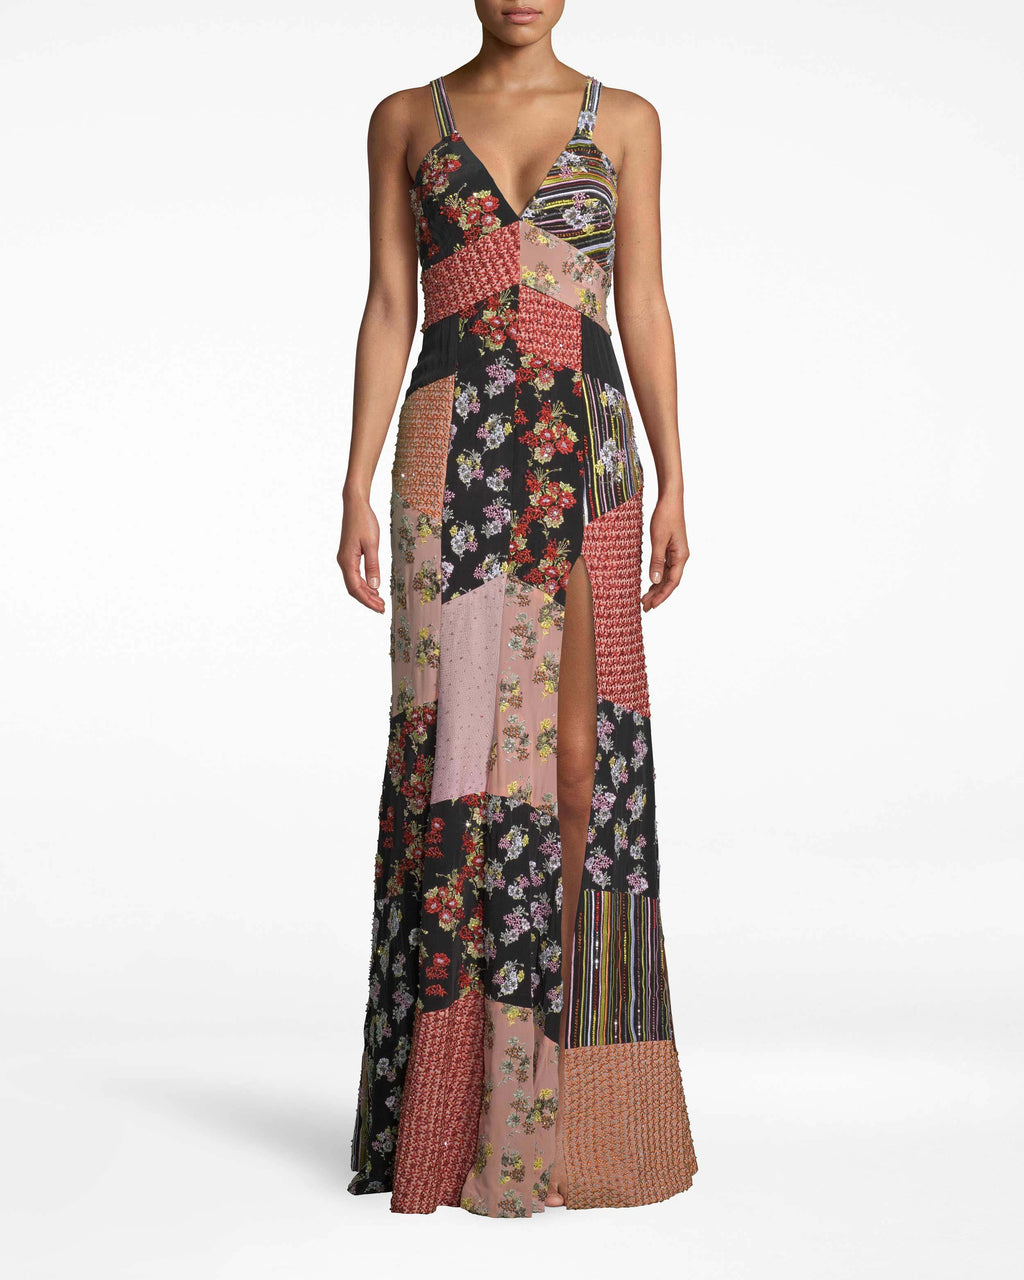 FJ10038 - PROVENCE FLORAL EMBELLISHED PATCHWORK GOWN - dresses - long - ALMOST EVERY INCH OF THIS FLOOR LENGTH GOWN IS INTRICATELY EMBROIDERED WITH SEQUINS, BEADS AND RHINESTONES. THIS RUNWAY STYLE FEATURES SPAGHETTI STRAPS, A PLUNGING NECKLINE AND SIDE SLIT. PAIR WITH MINIMAL ACCESSORIES. FULLY LINED AND BACK ZIPPER FOR CLOSURE.